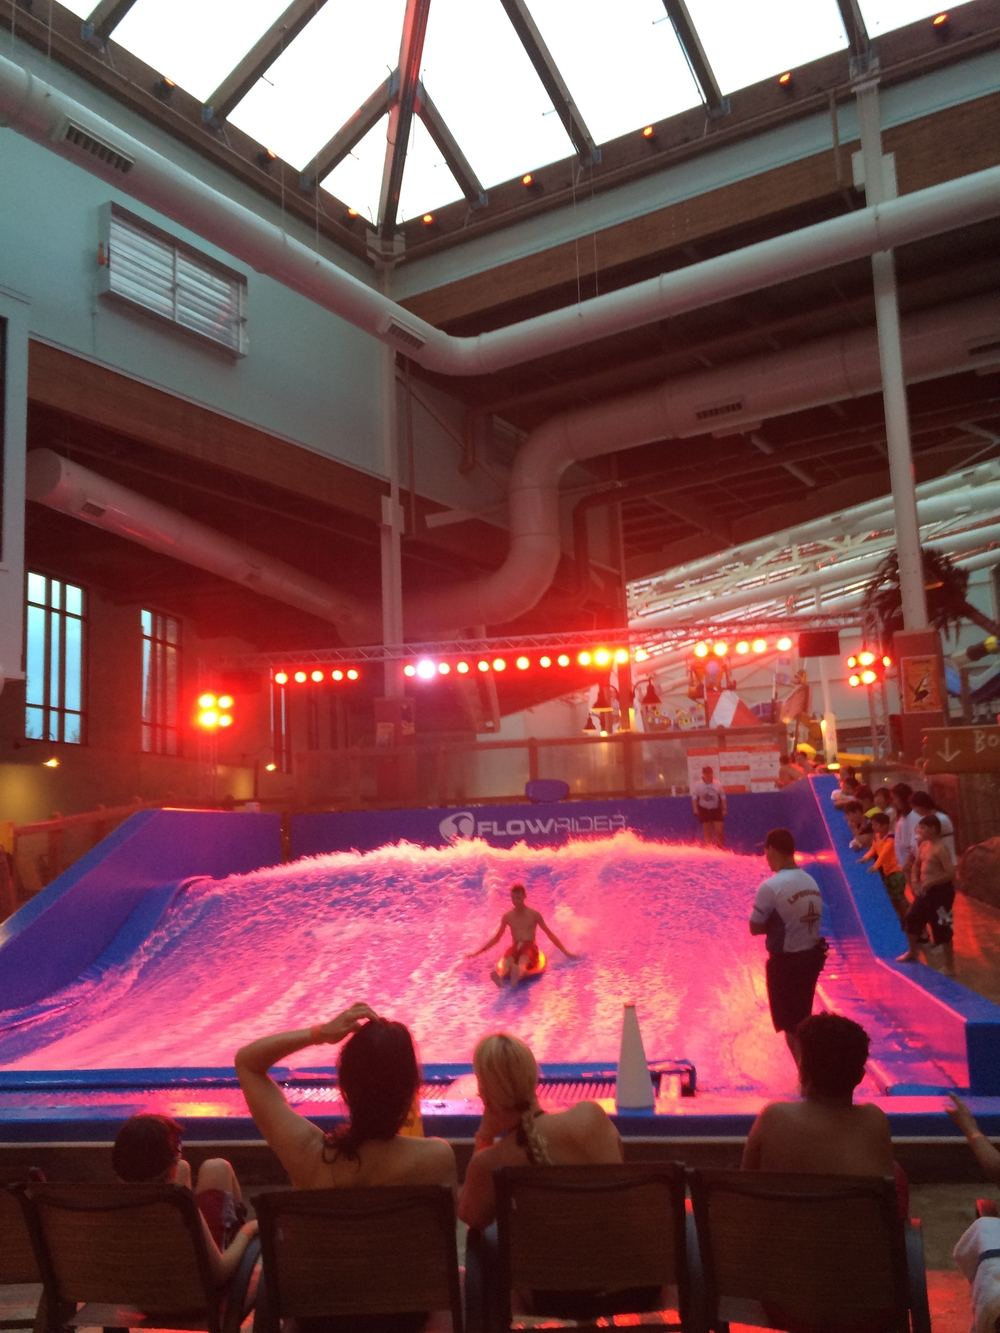 Flowrider surf expereince at camelback